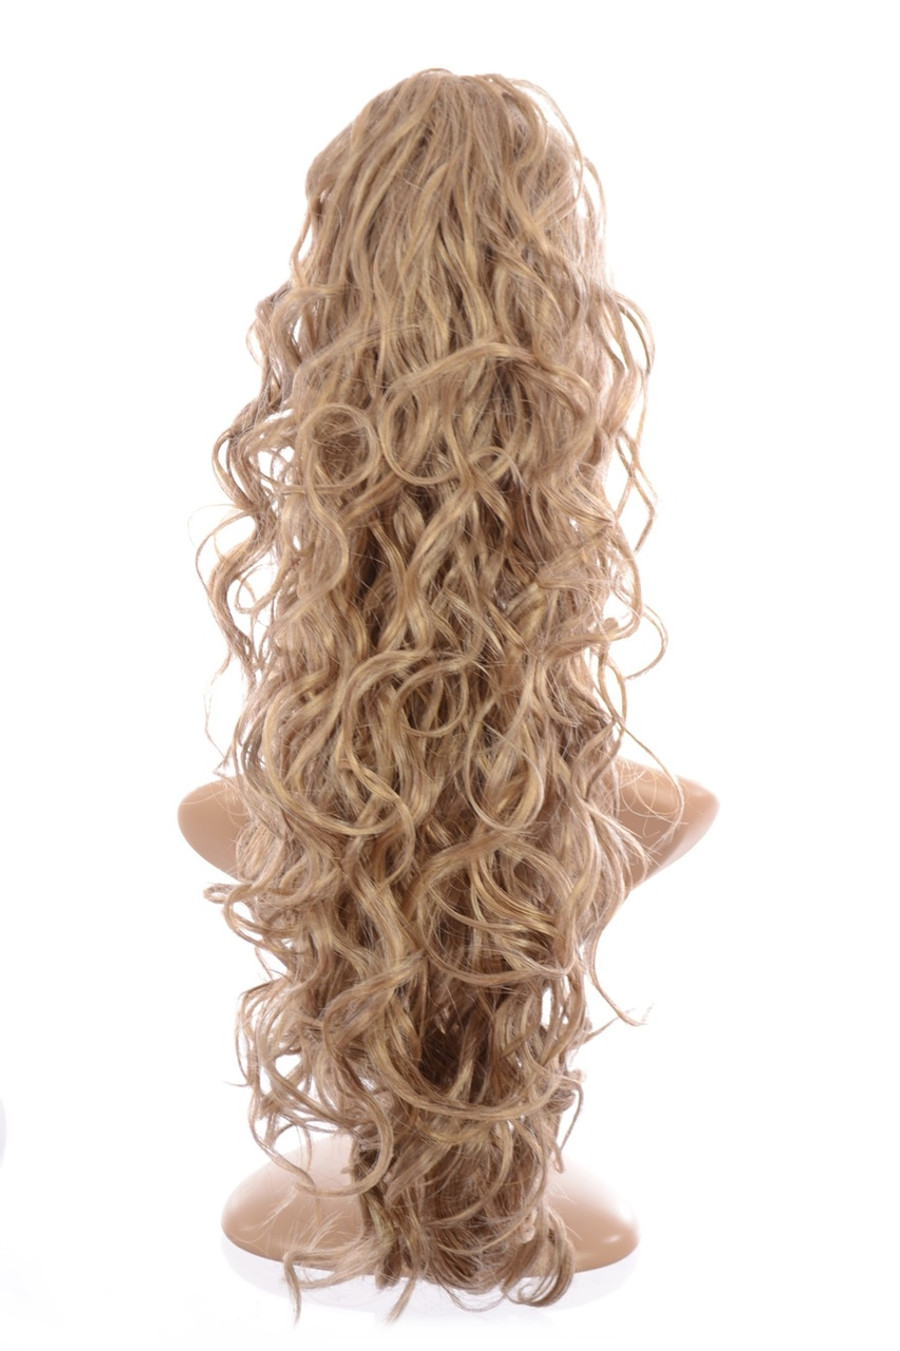 Claw Grip Ringlet Curly Hair Piece Ponytail Clip: Sandy Ash Blonde